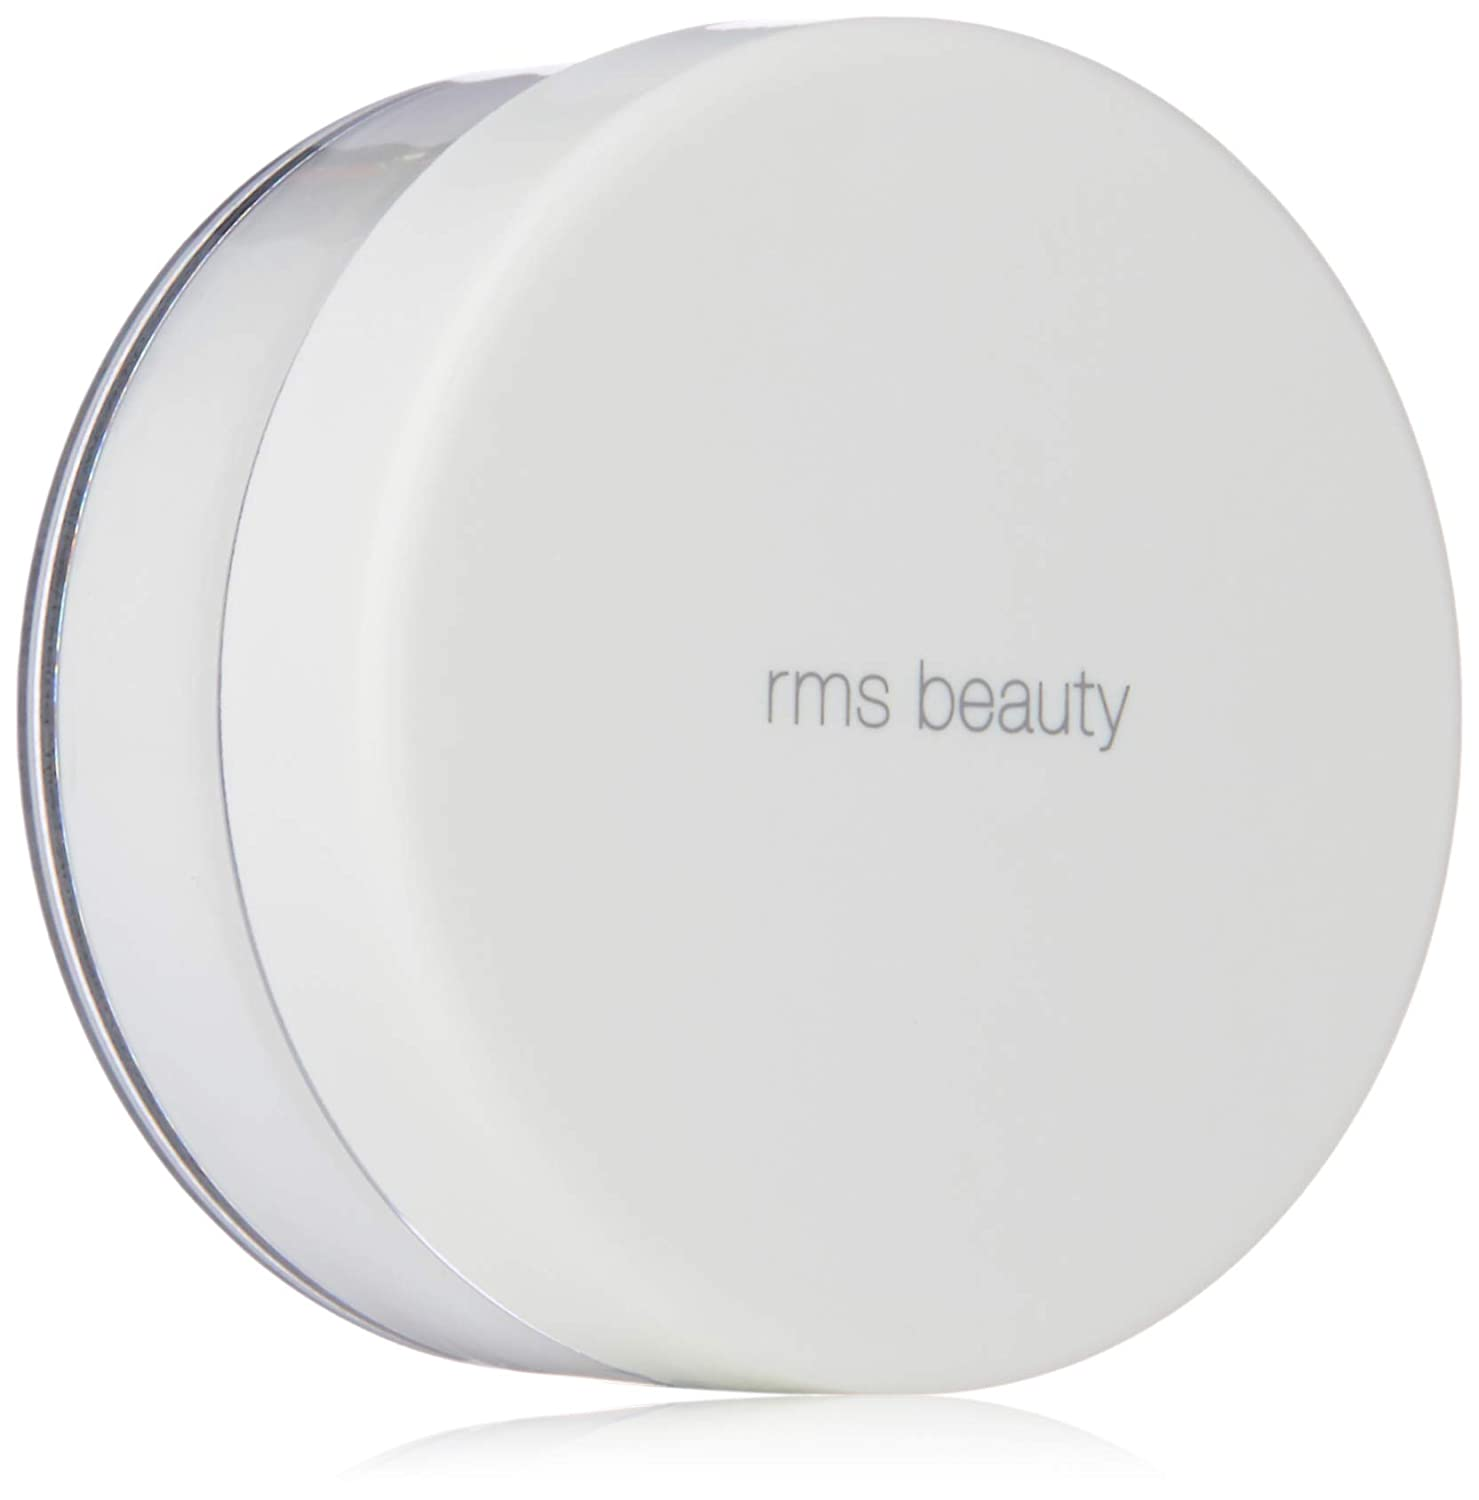 RMS Beauty Un Powder 0.32 Ounce